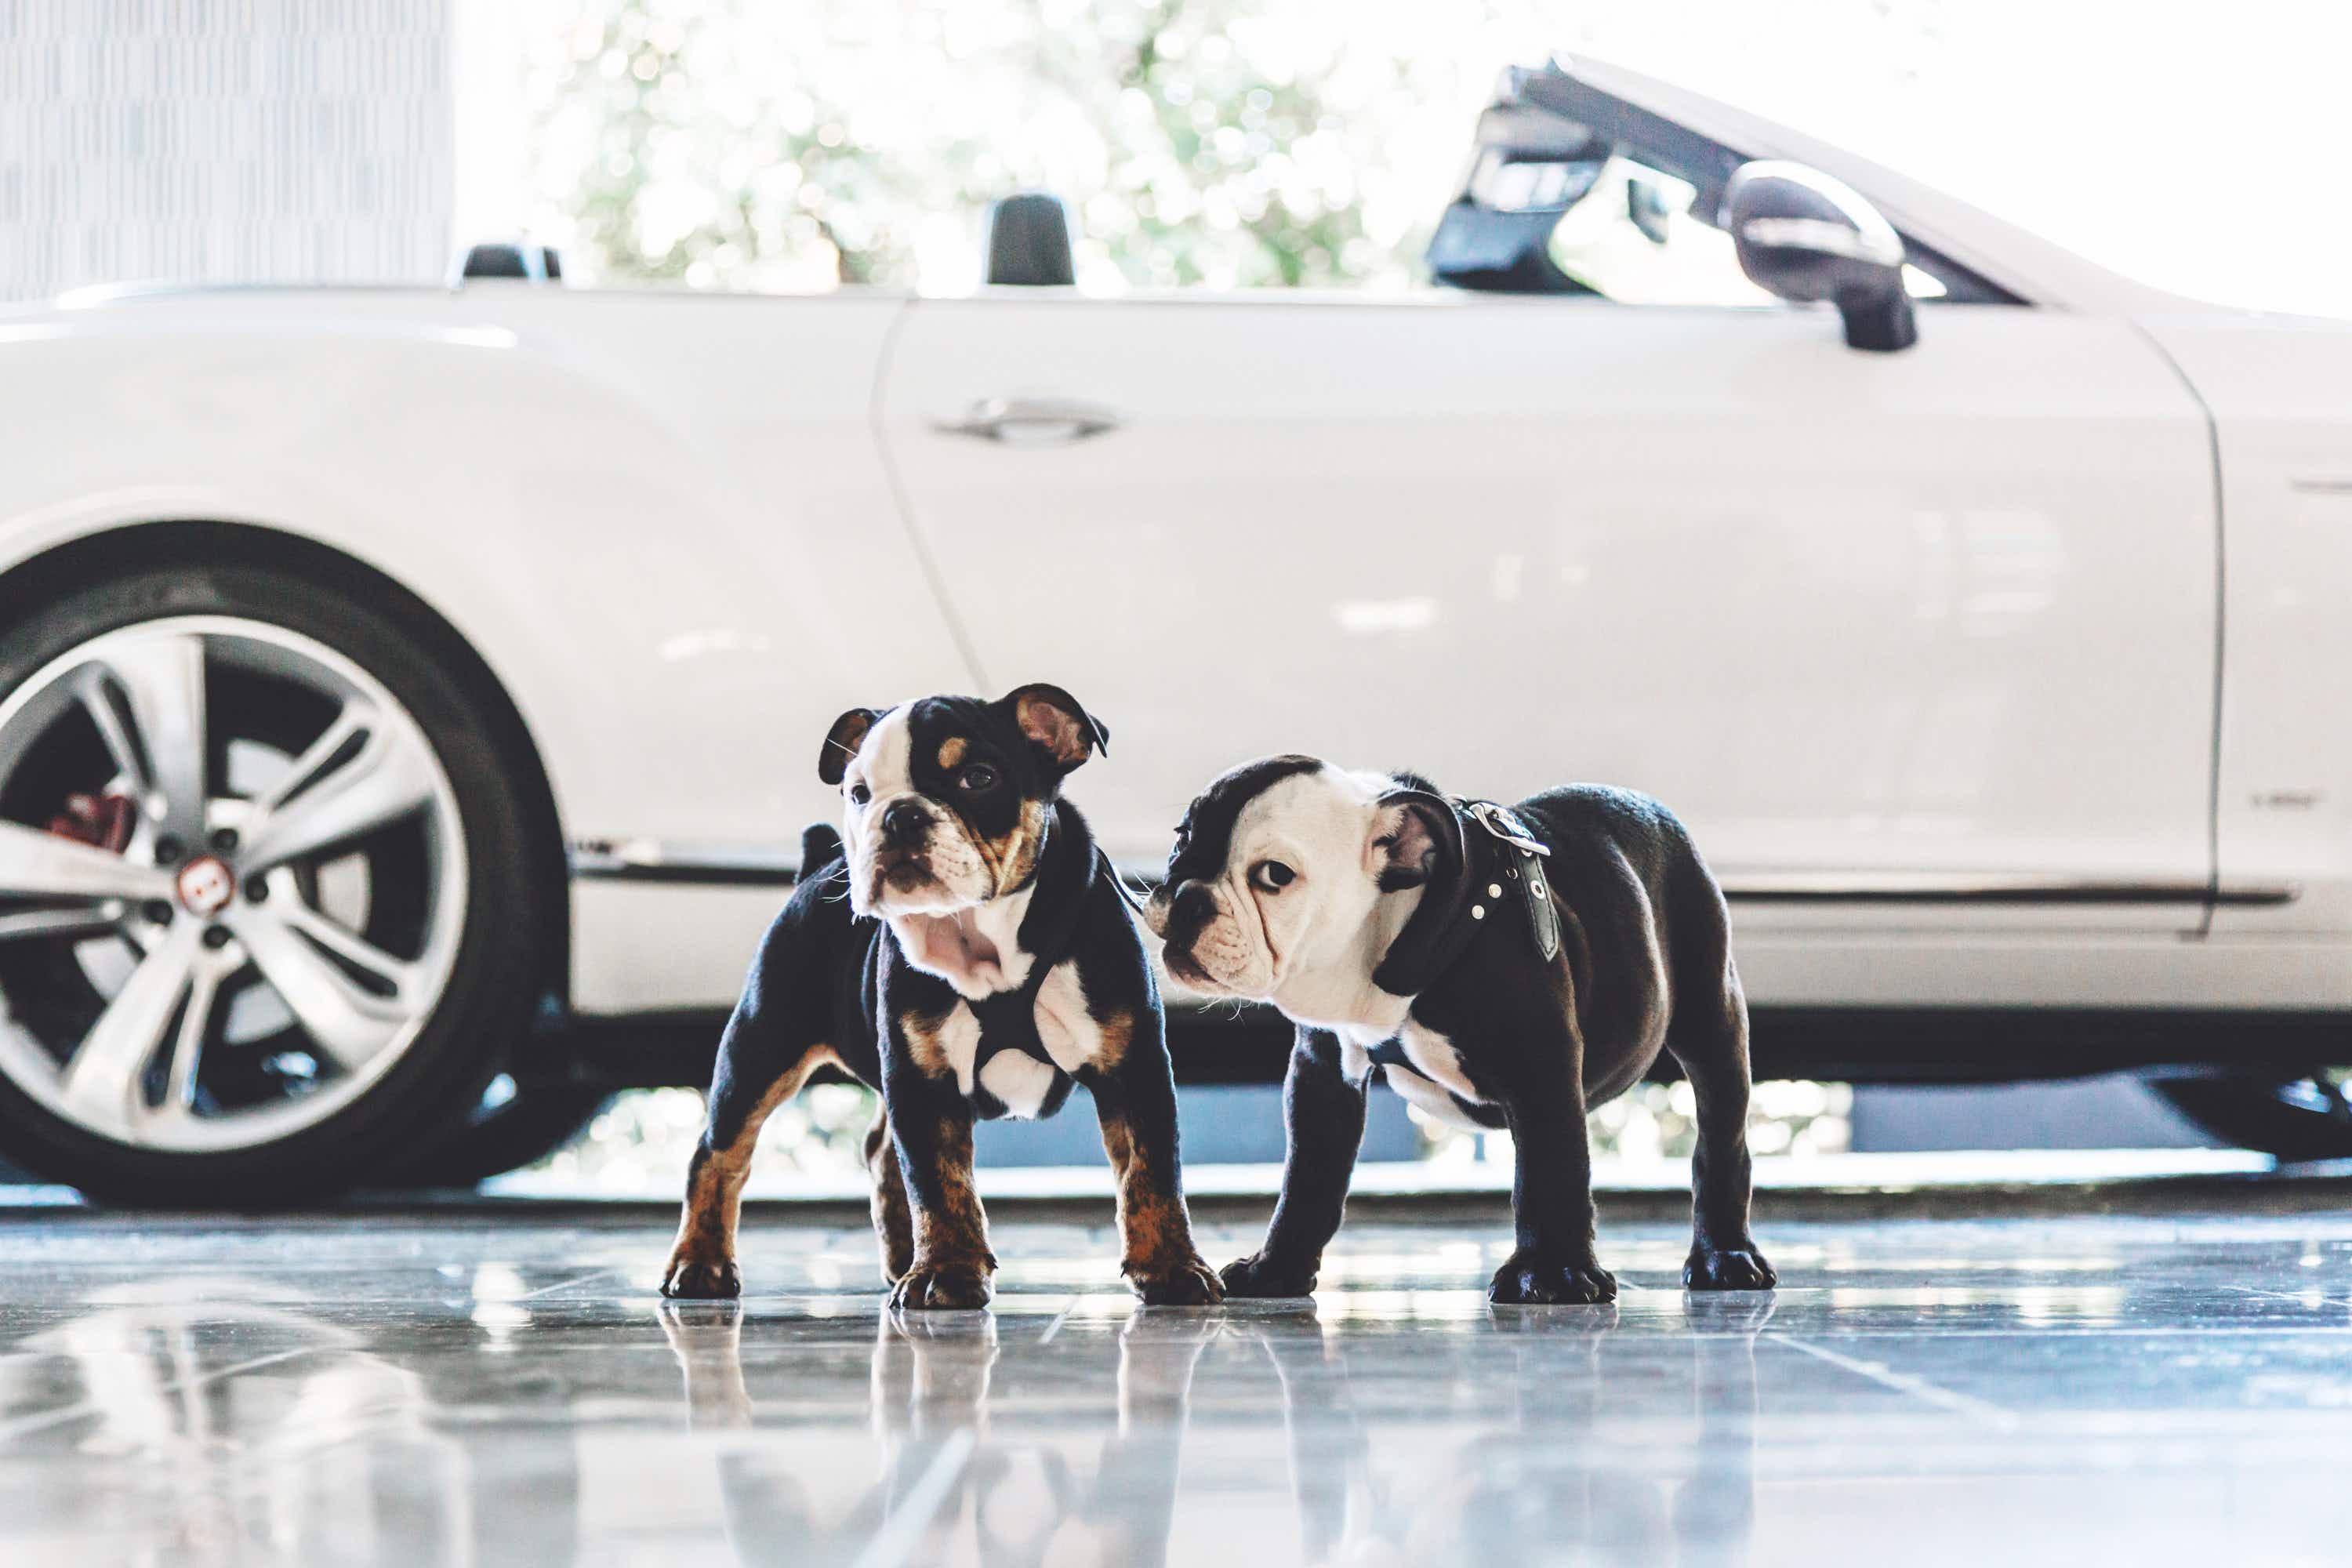 Hang out with these adorable English bulldogs at a California hotel